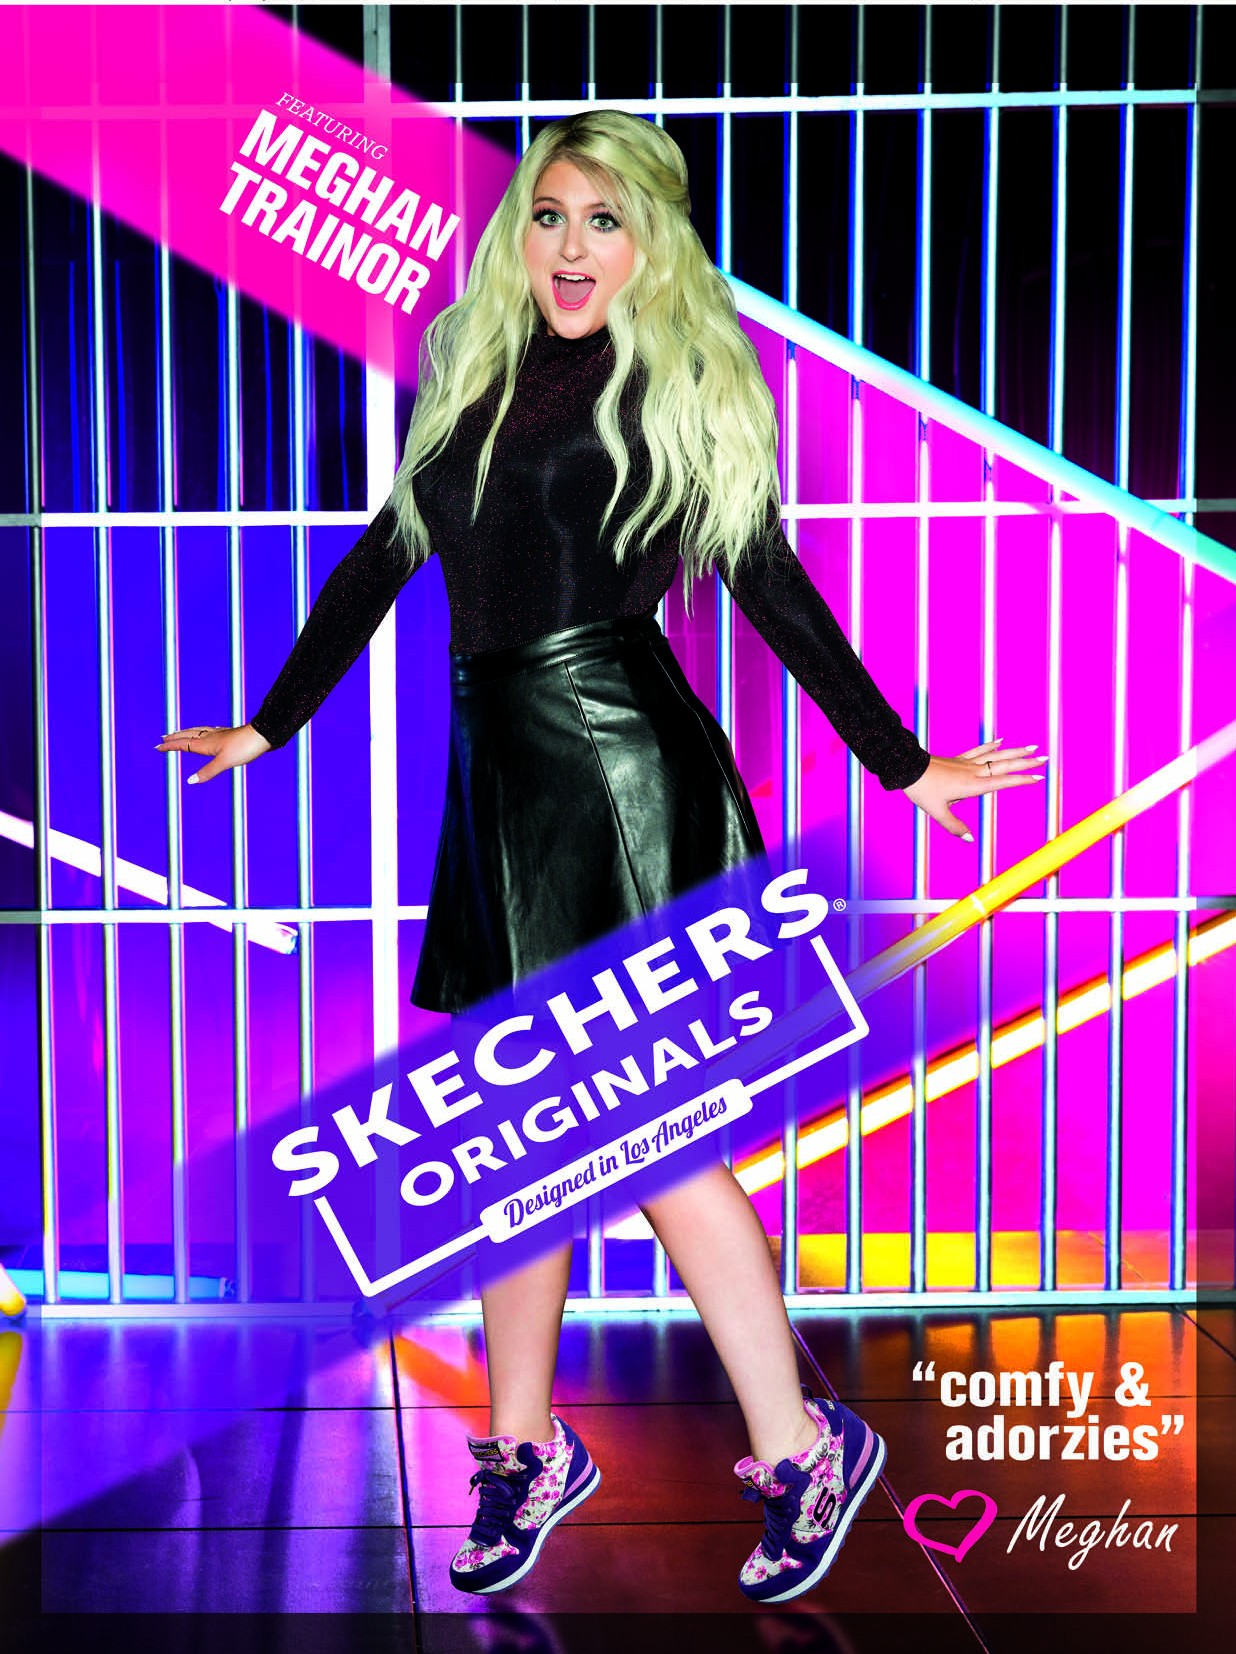 SKECHERS The Source   News and fashion from the footwear